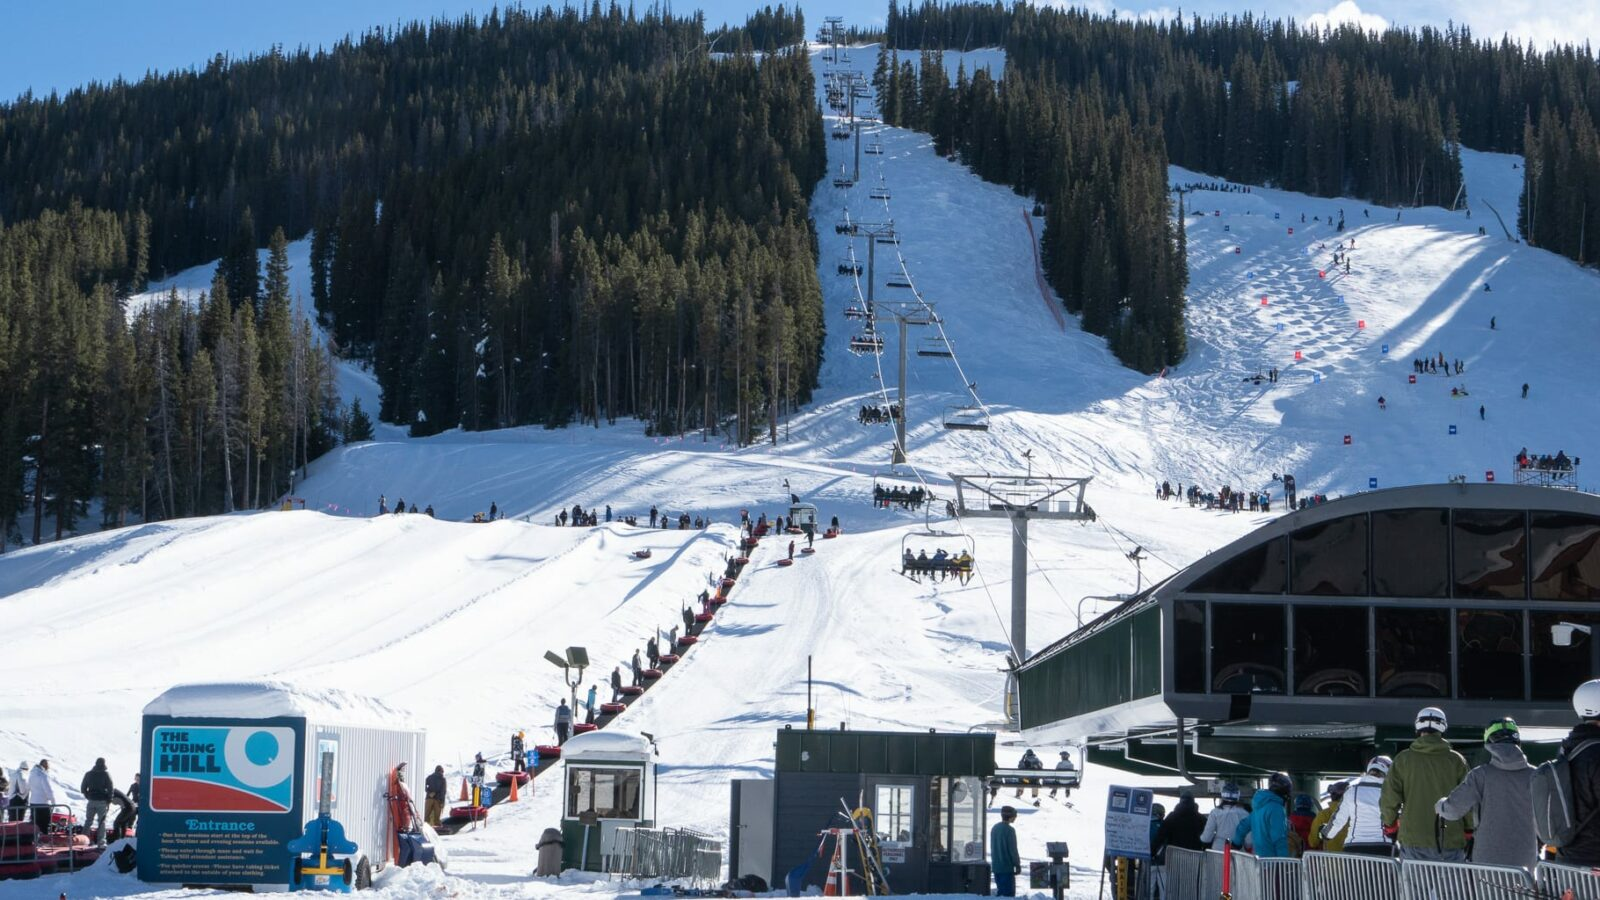 Copper Mountain Resort Chairlift and Tubing Hill